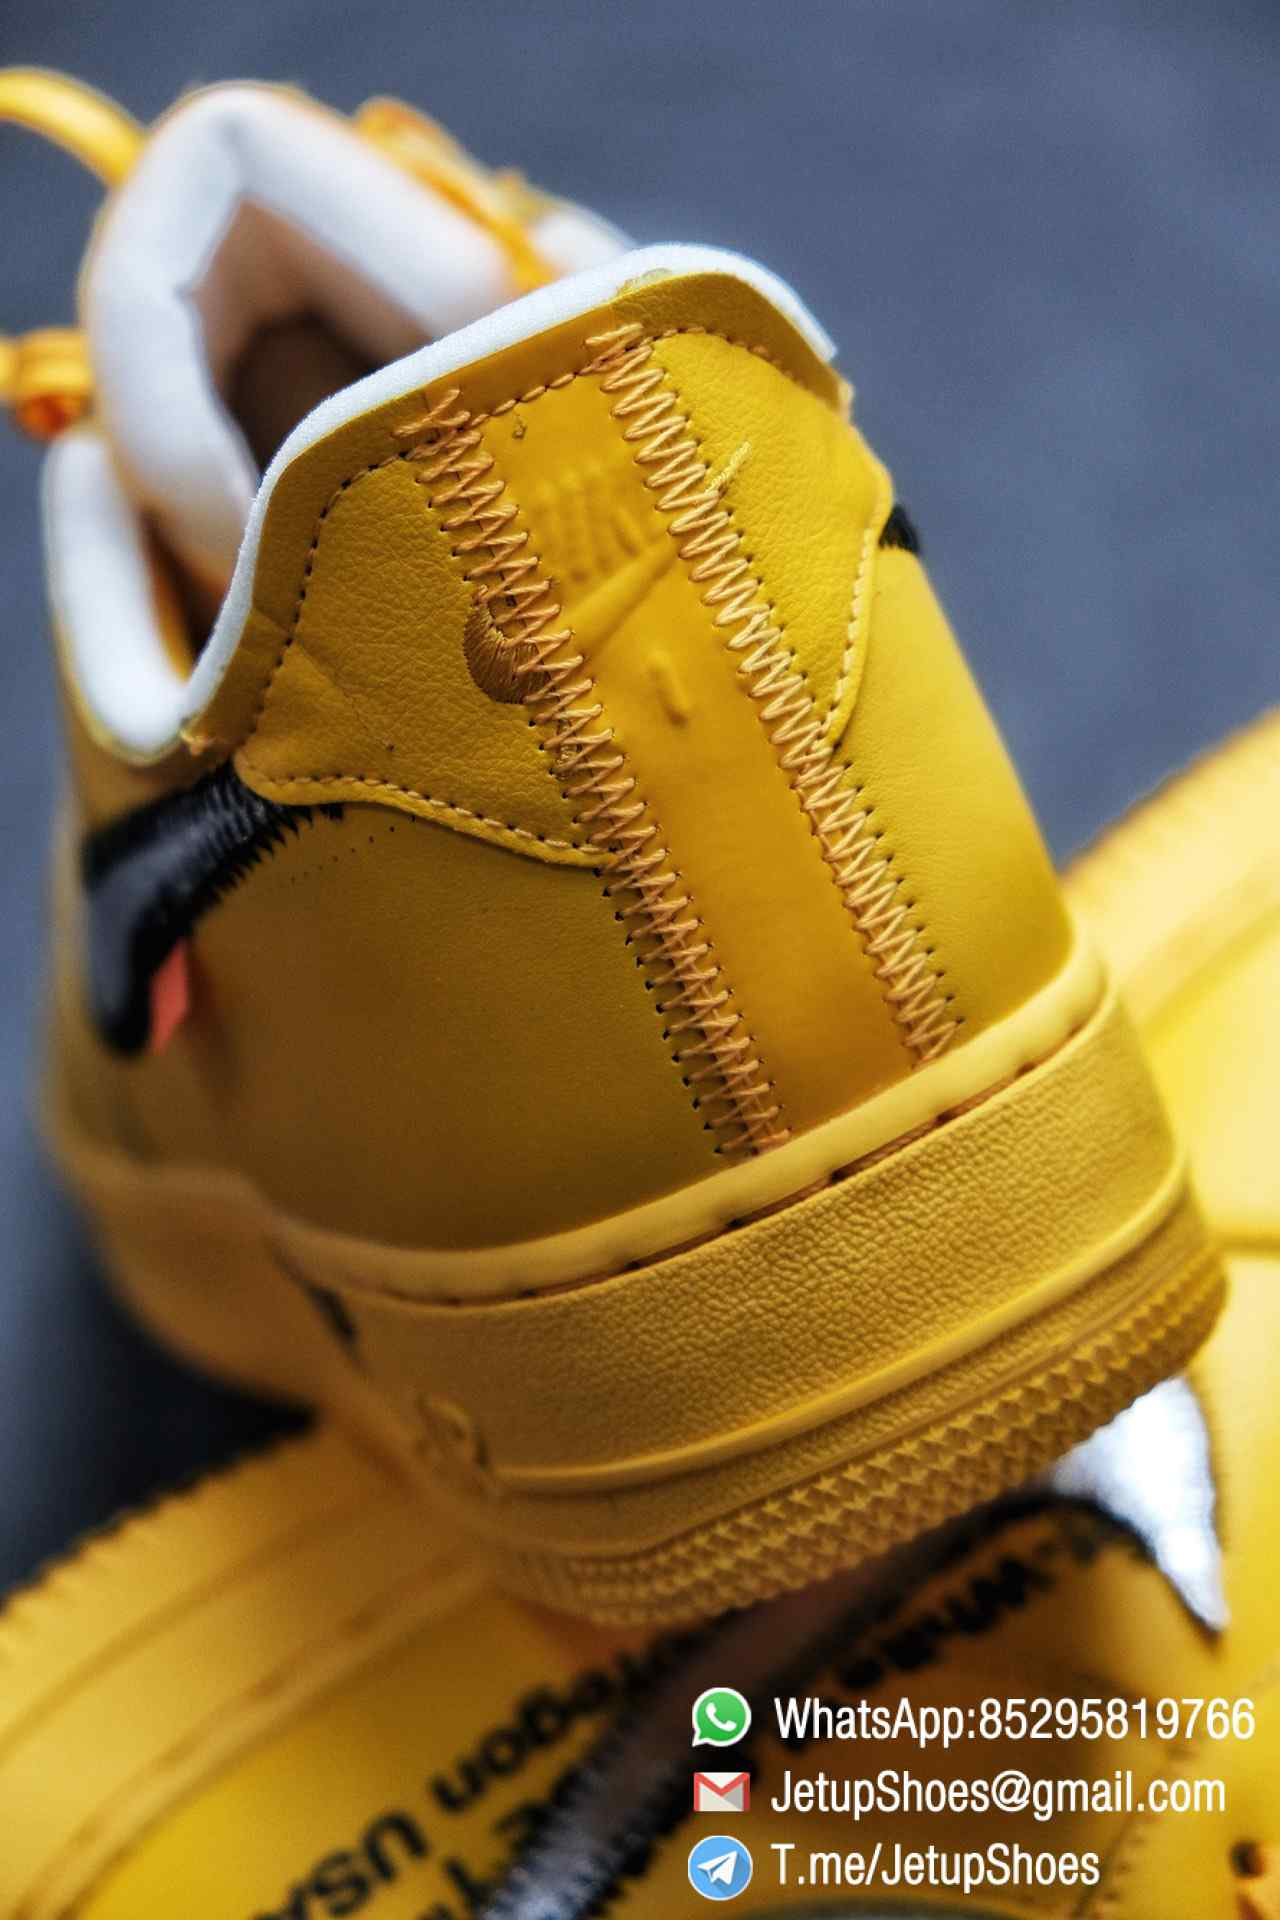 Best Replica Sneakers Off White x Air Force 1 Low University Gold SKU DD1876 700 Top Quality Basketball Shoes 016